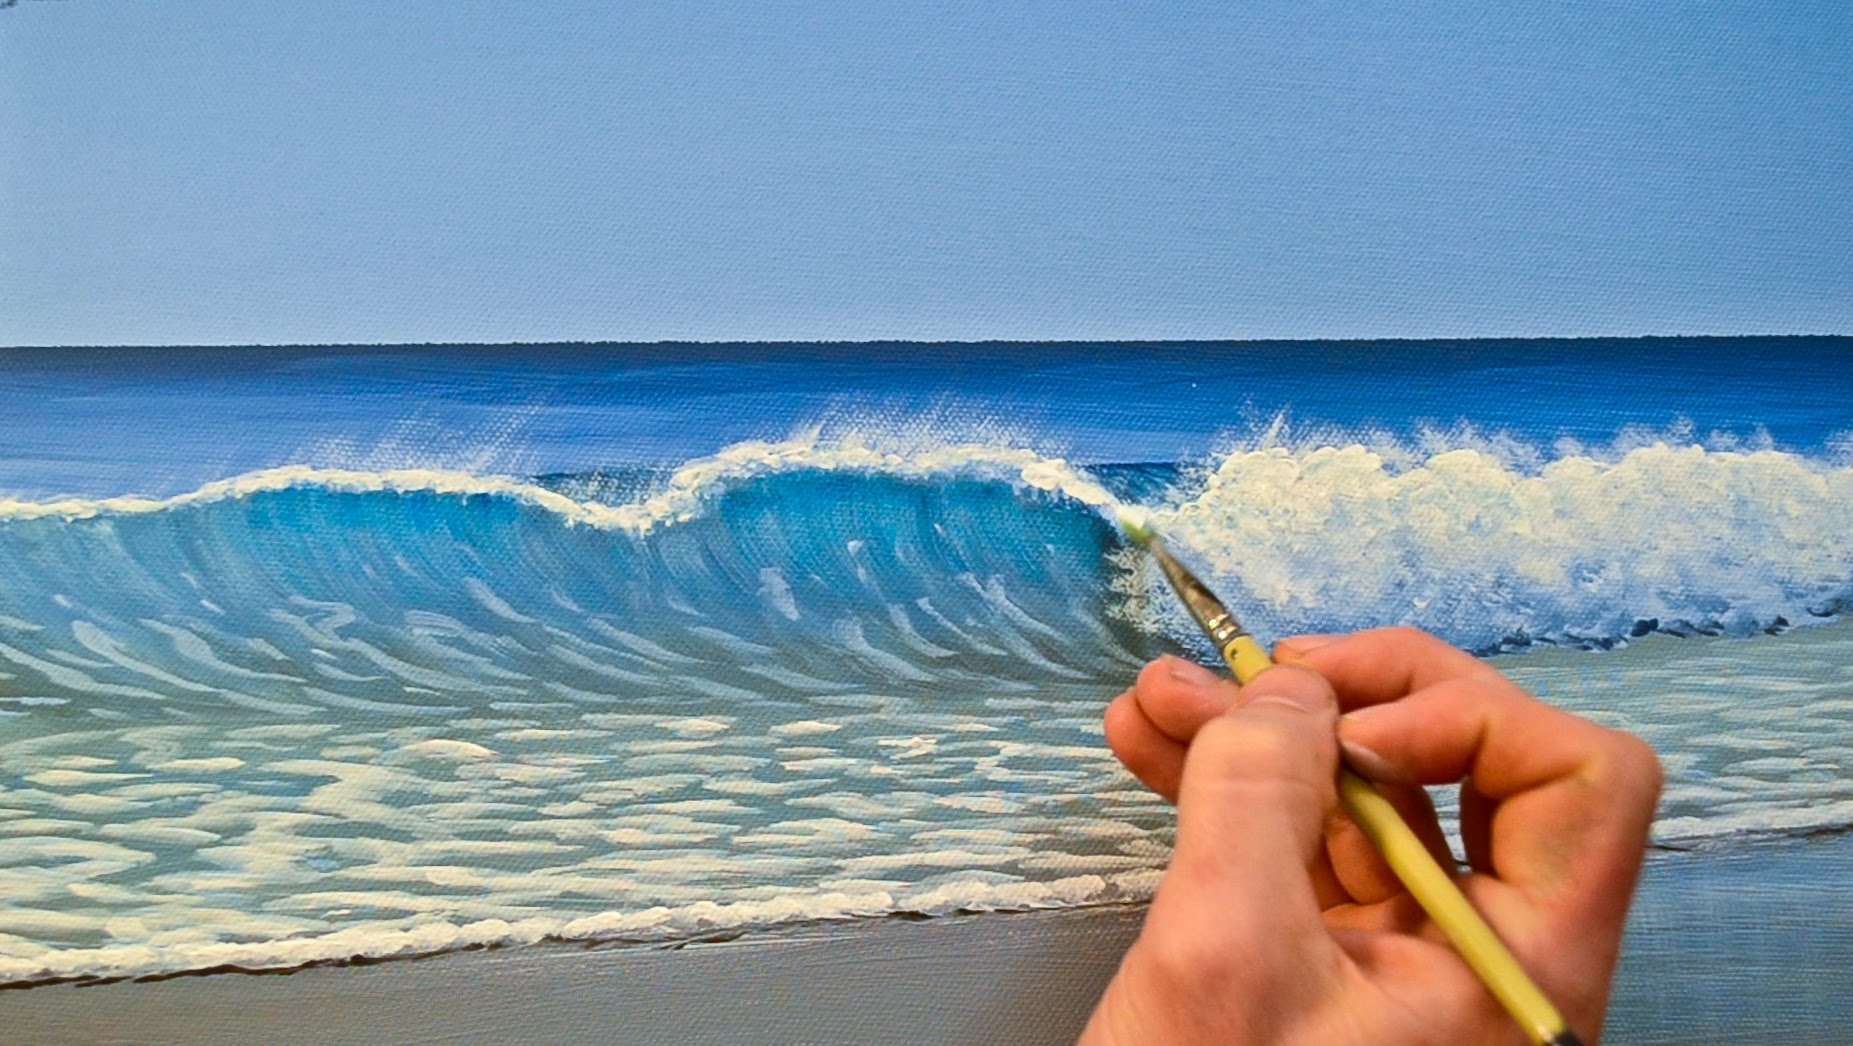 How to Paint a Wave in Acrylics - YouTube